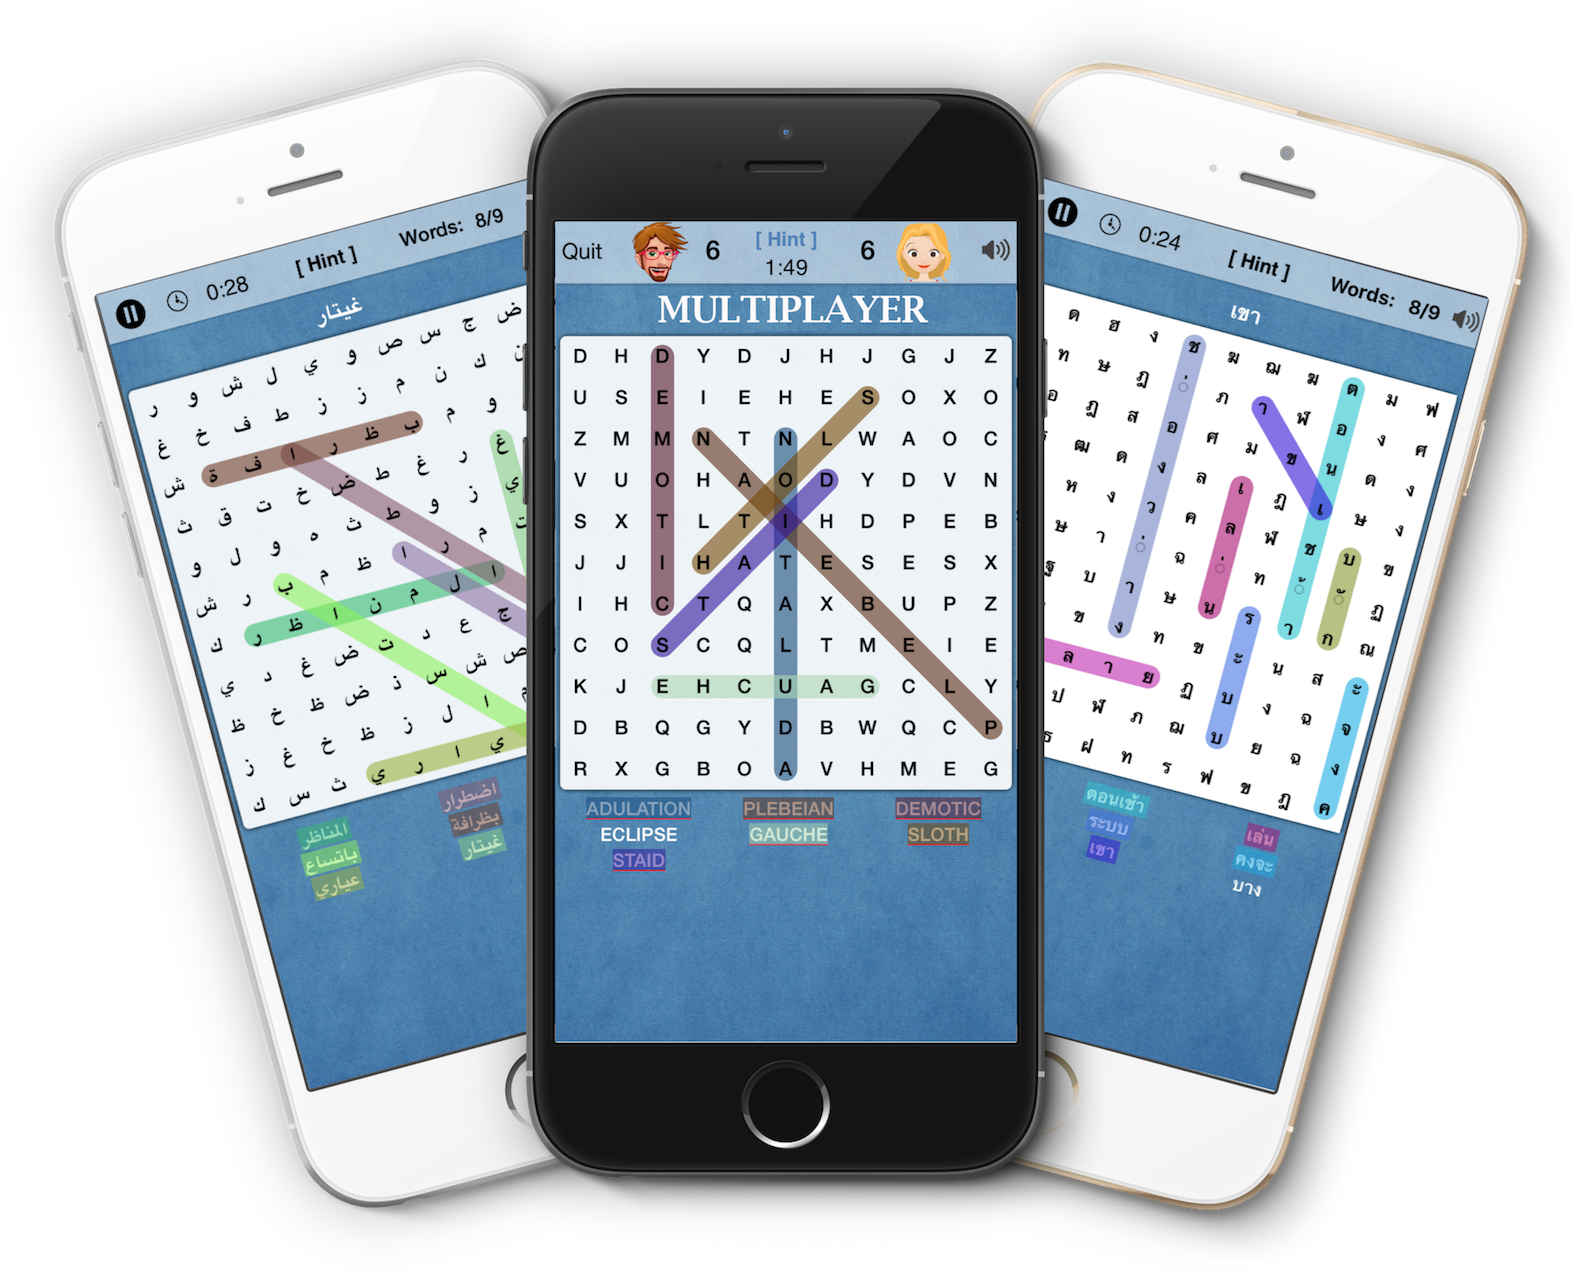 Word Search Multiplayer - Crossword Multilingual